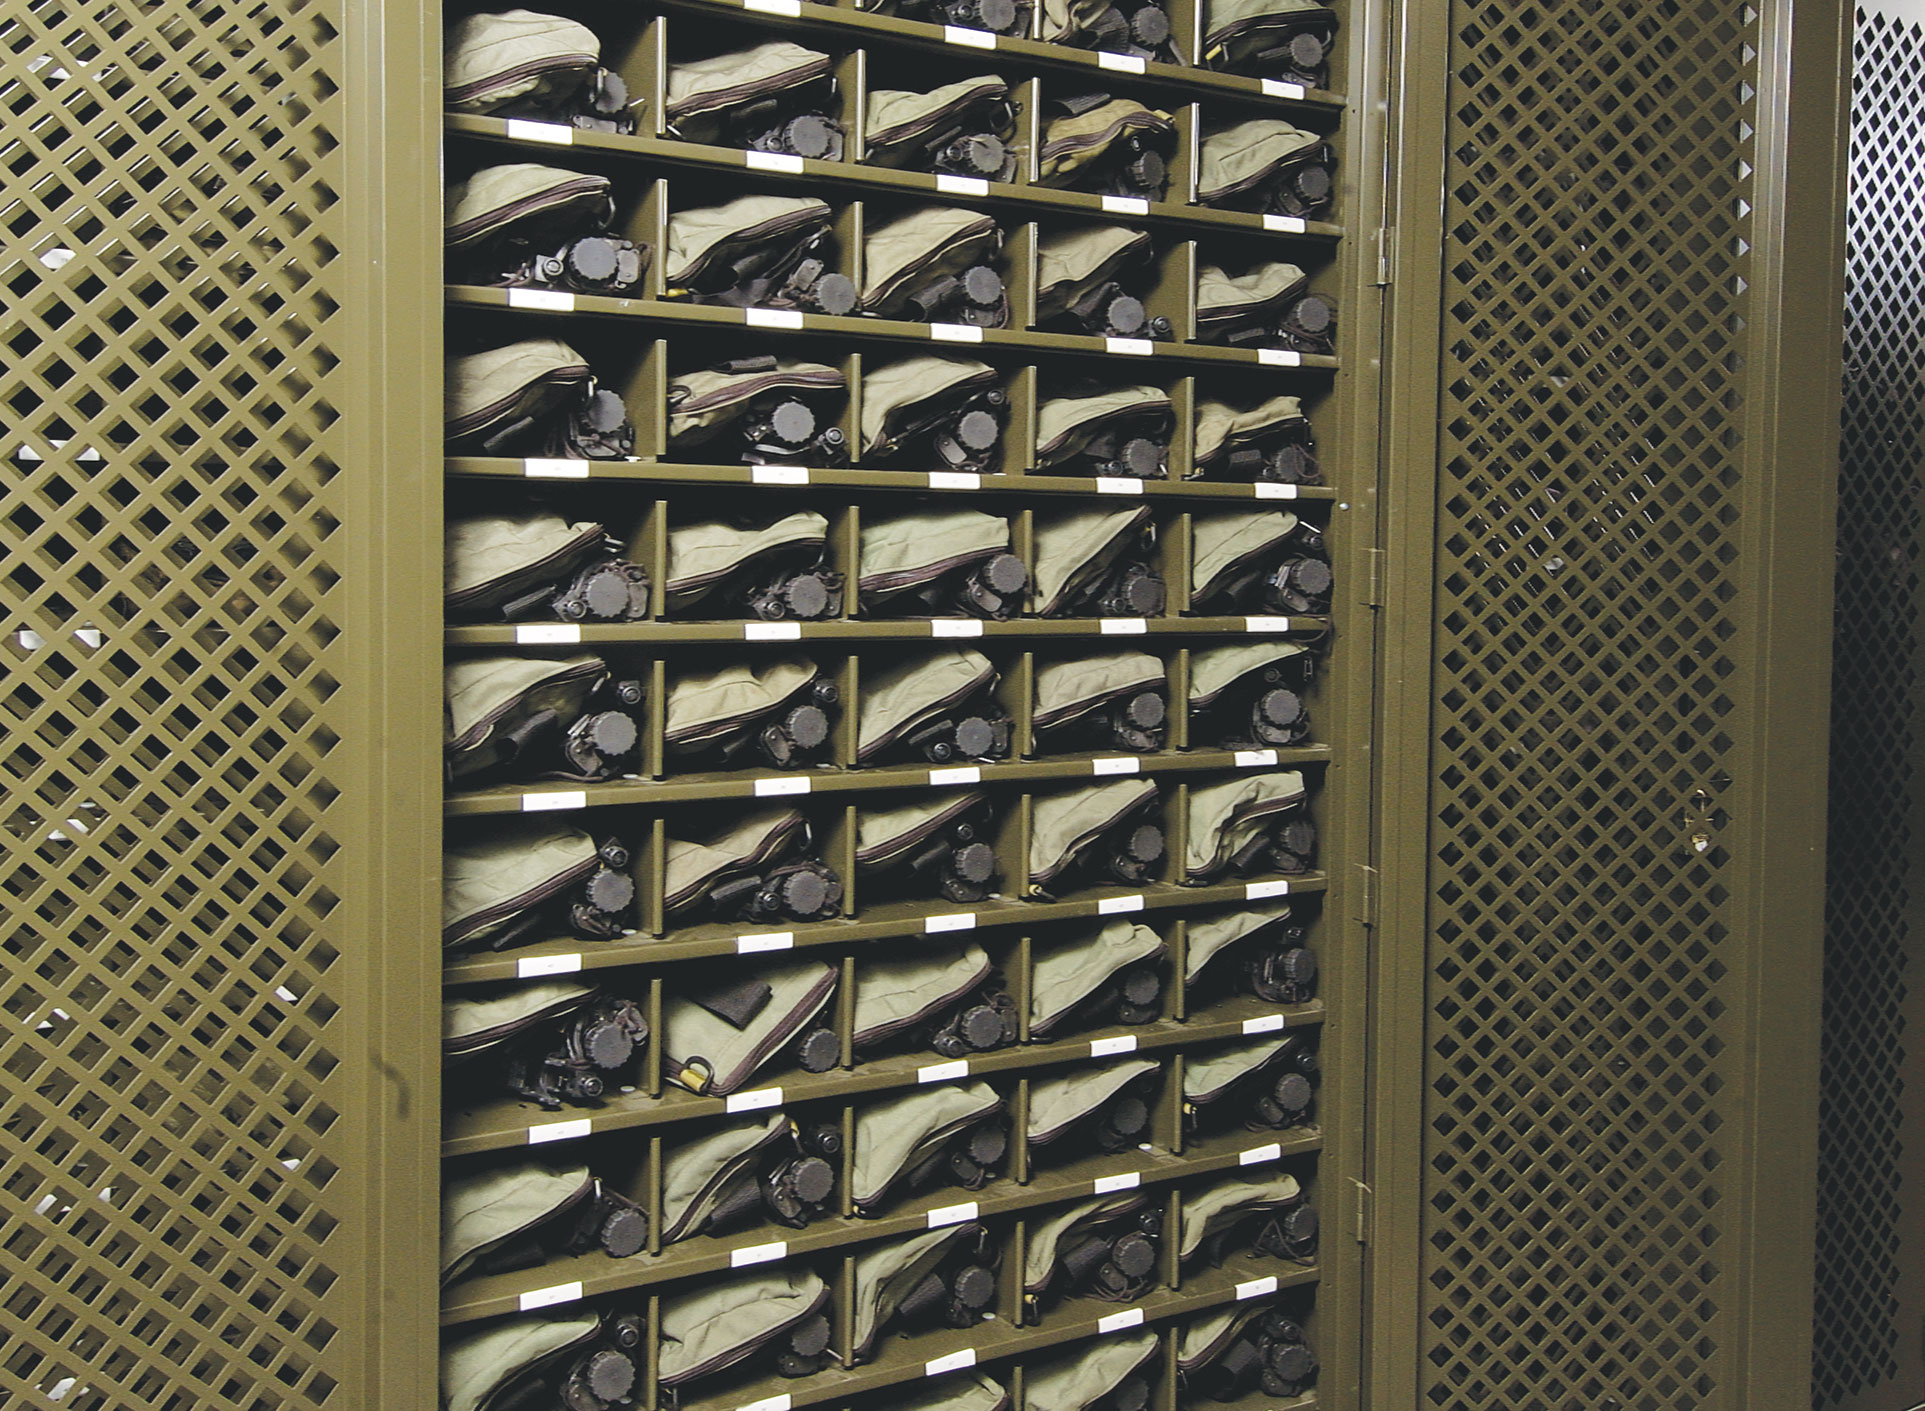 Welded cabinet for Optics storage